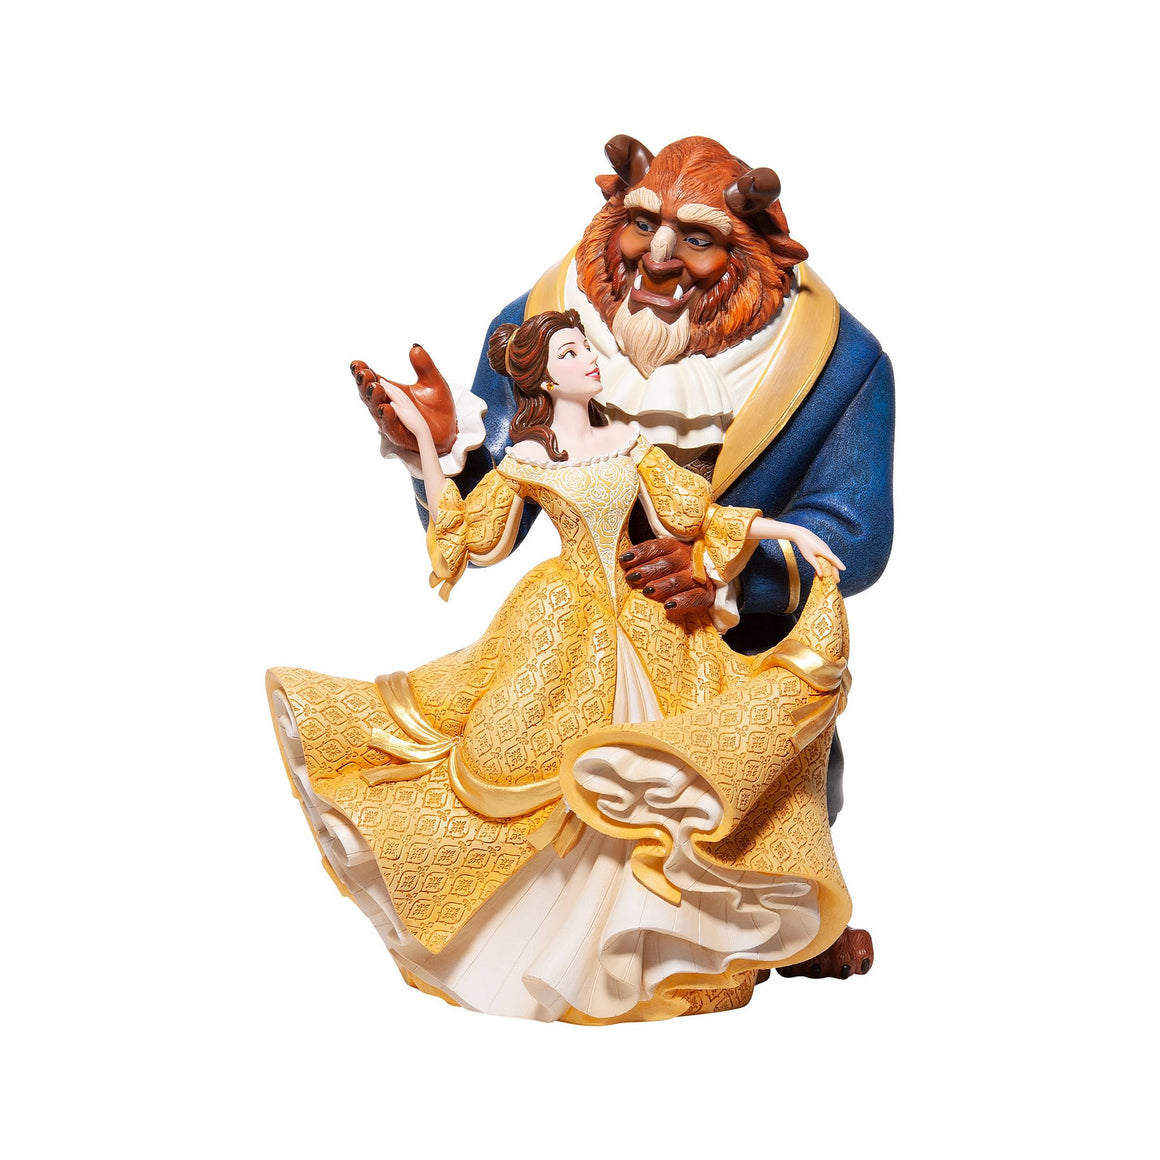 Disney Showcase Collection Beauty and the Beast Deluxe Figurine